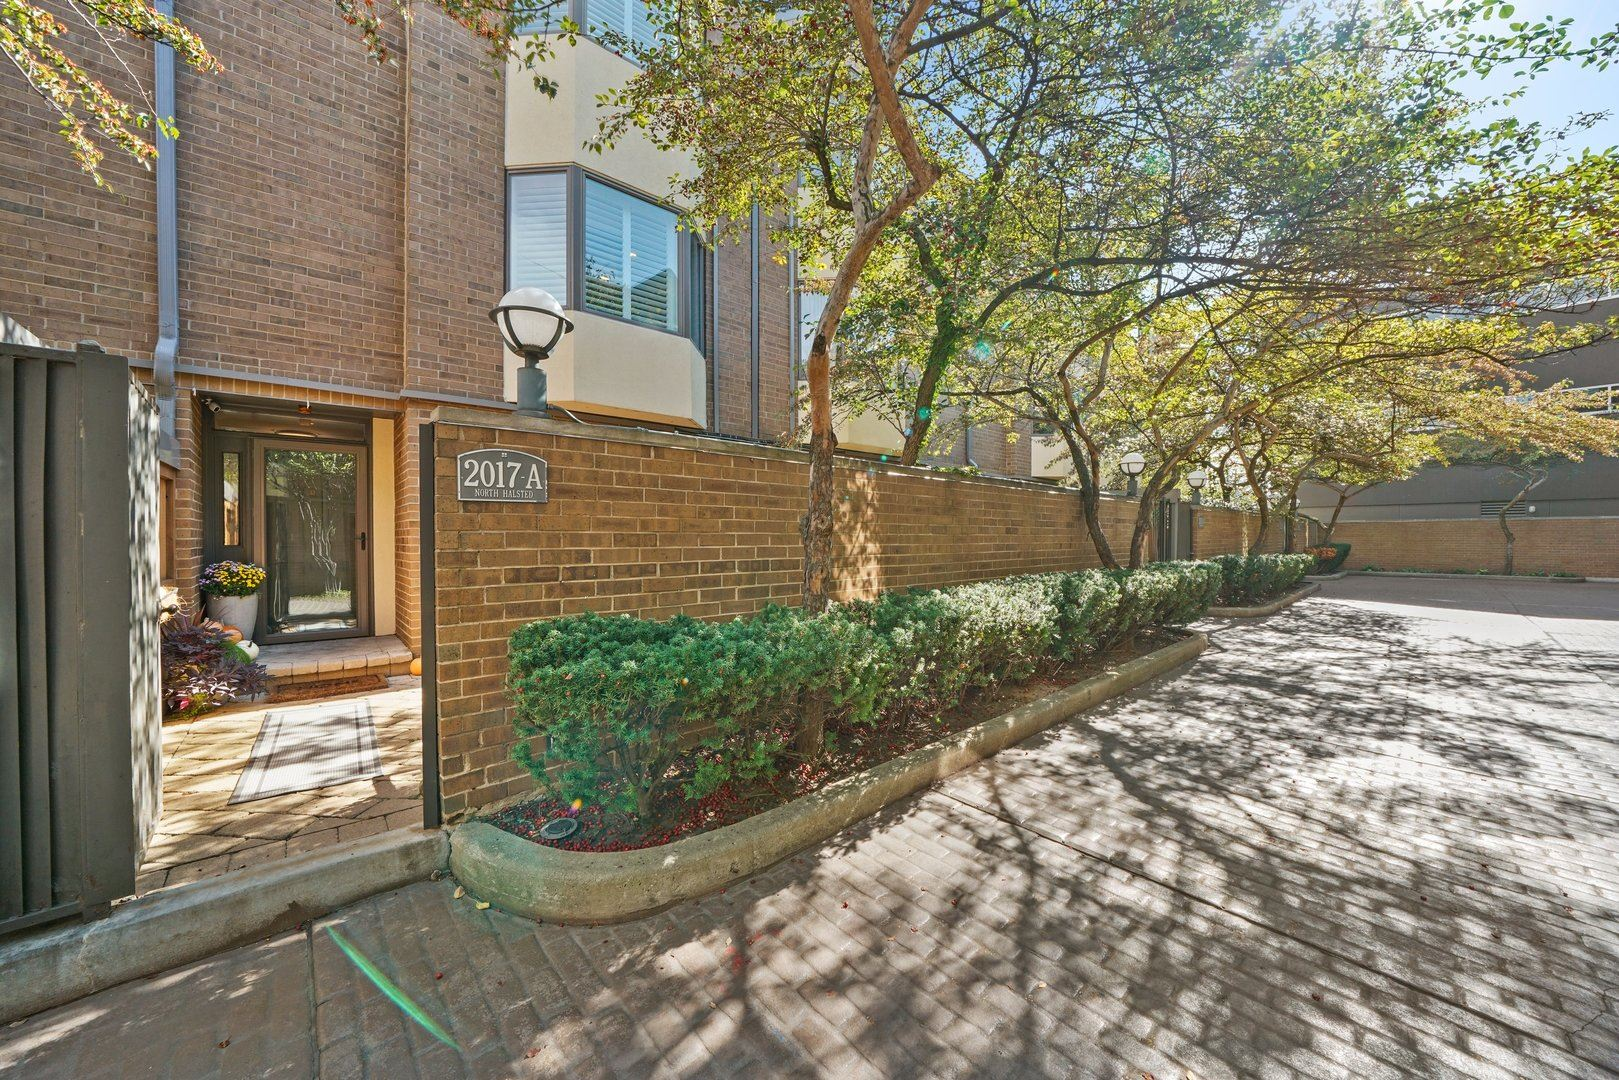 2017 N Halsted Street #A, Chicago, IL 60614 - #: 11251717